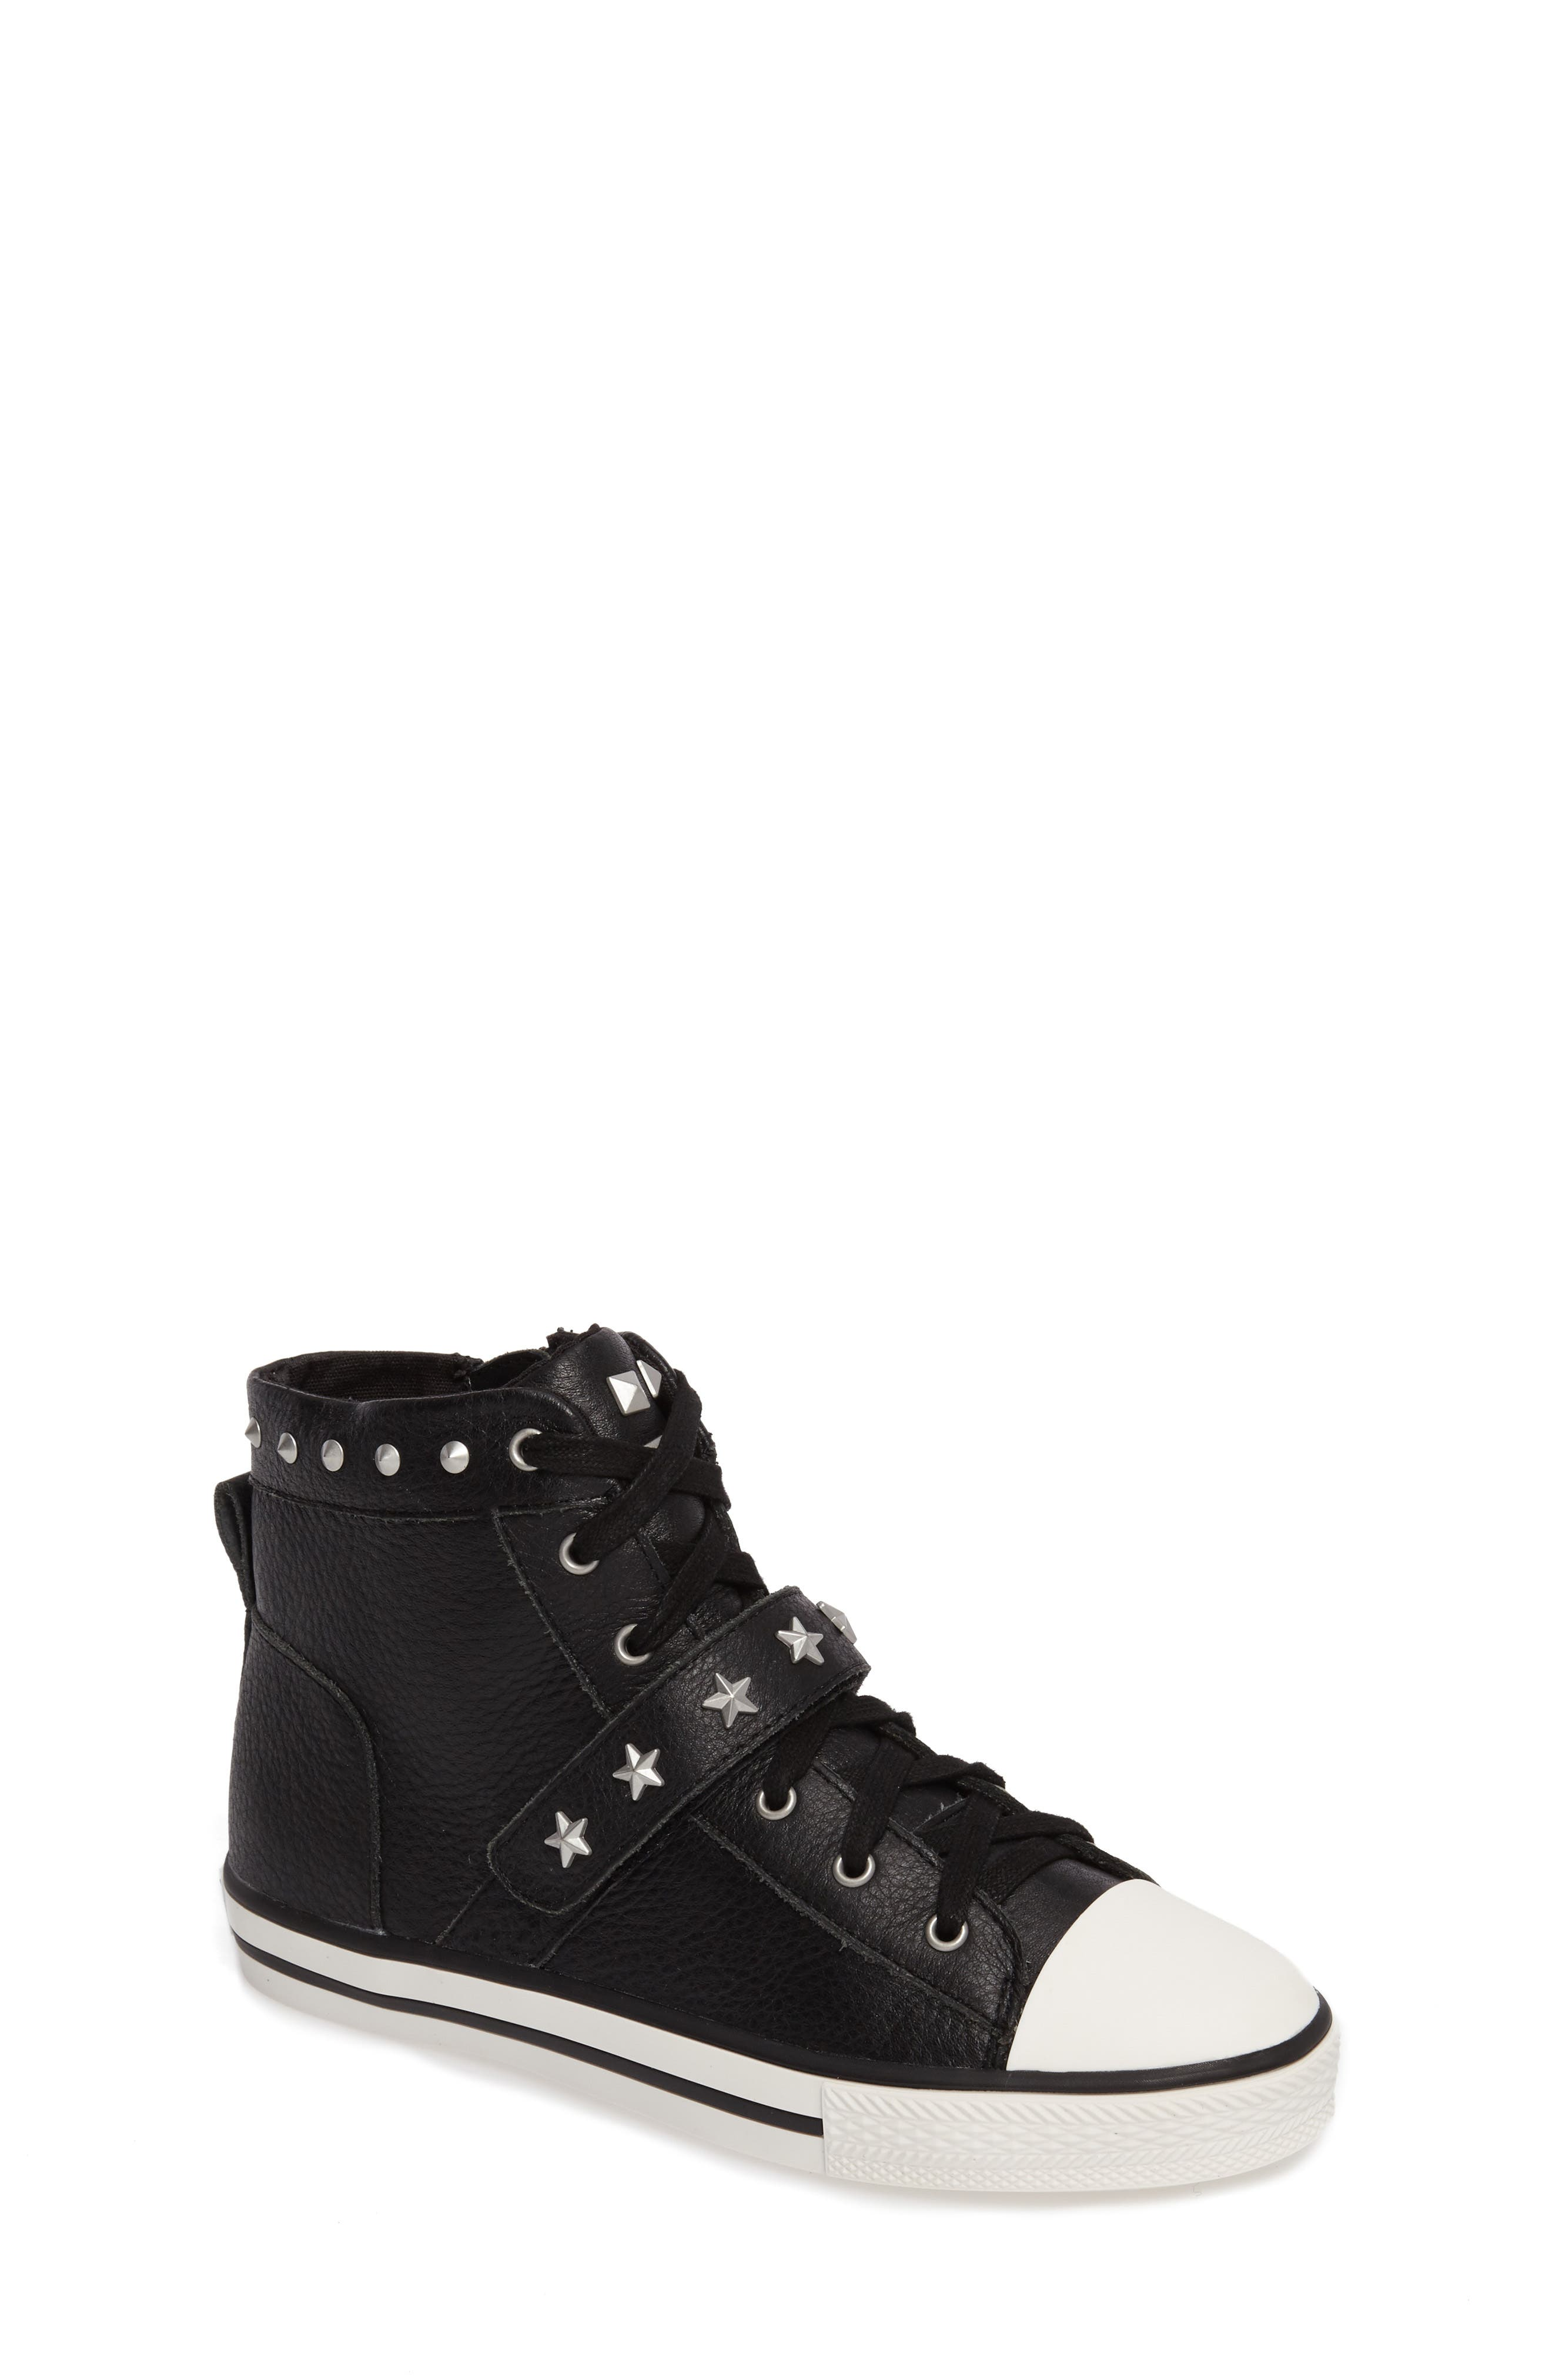 Vava Curve Studded High Top Sneaker,                         Main,                         color,